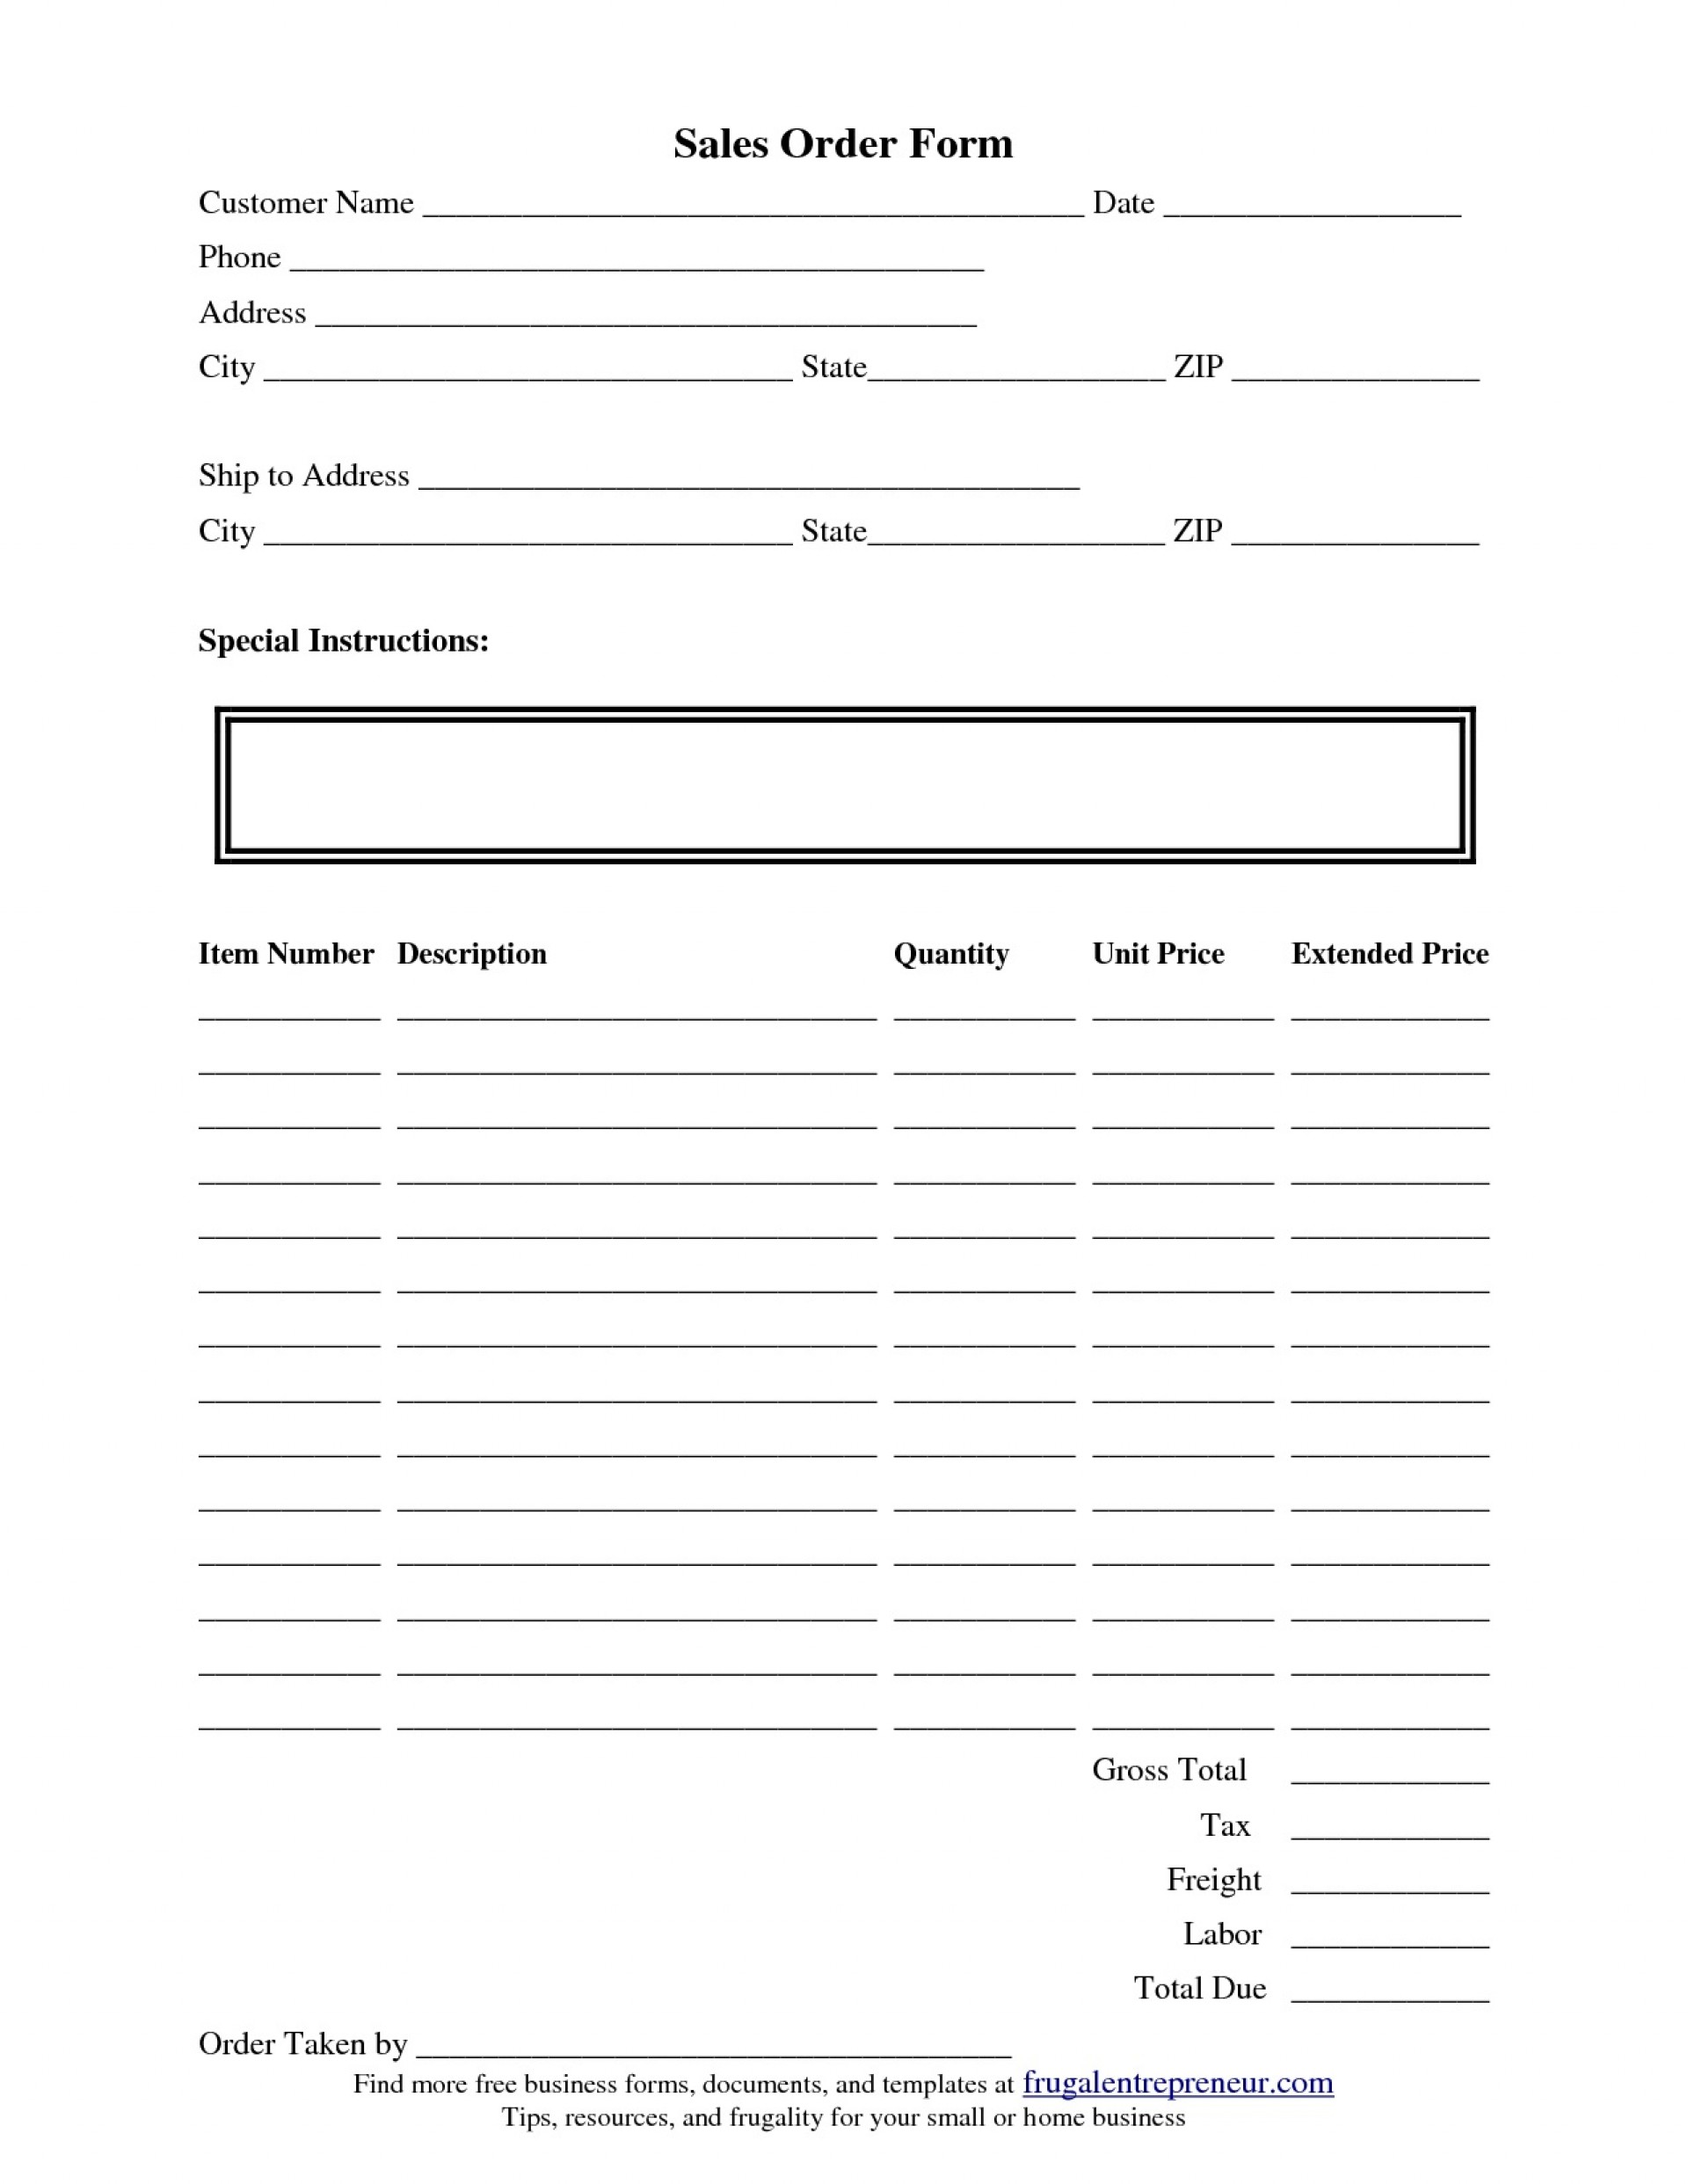 002 Dreaded Work Order Form Template High Def  Request Excel Advertising Company Free1920